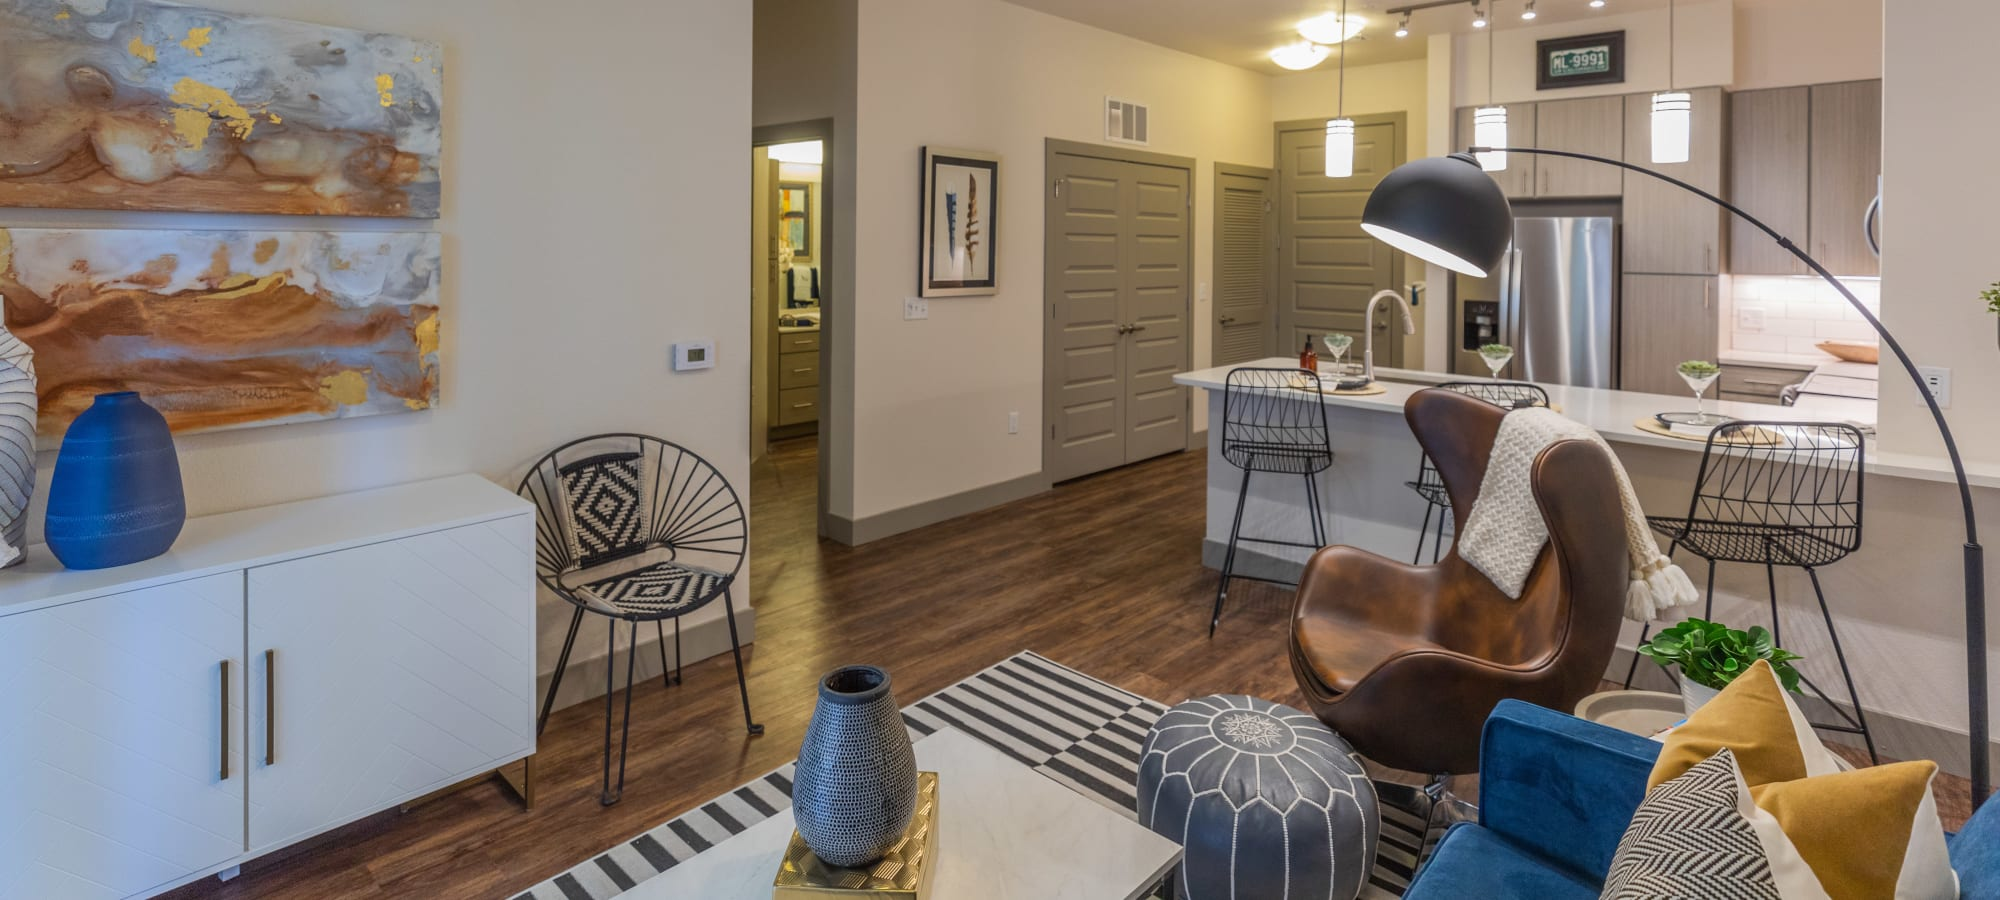 Classically furnished model home's living area at The Alcott in Denver, Colorado